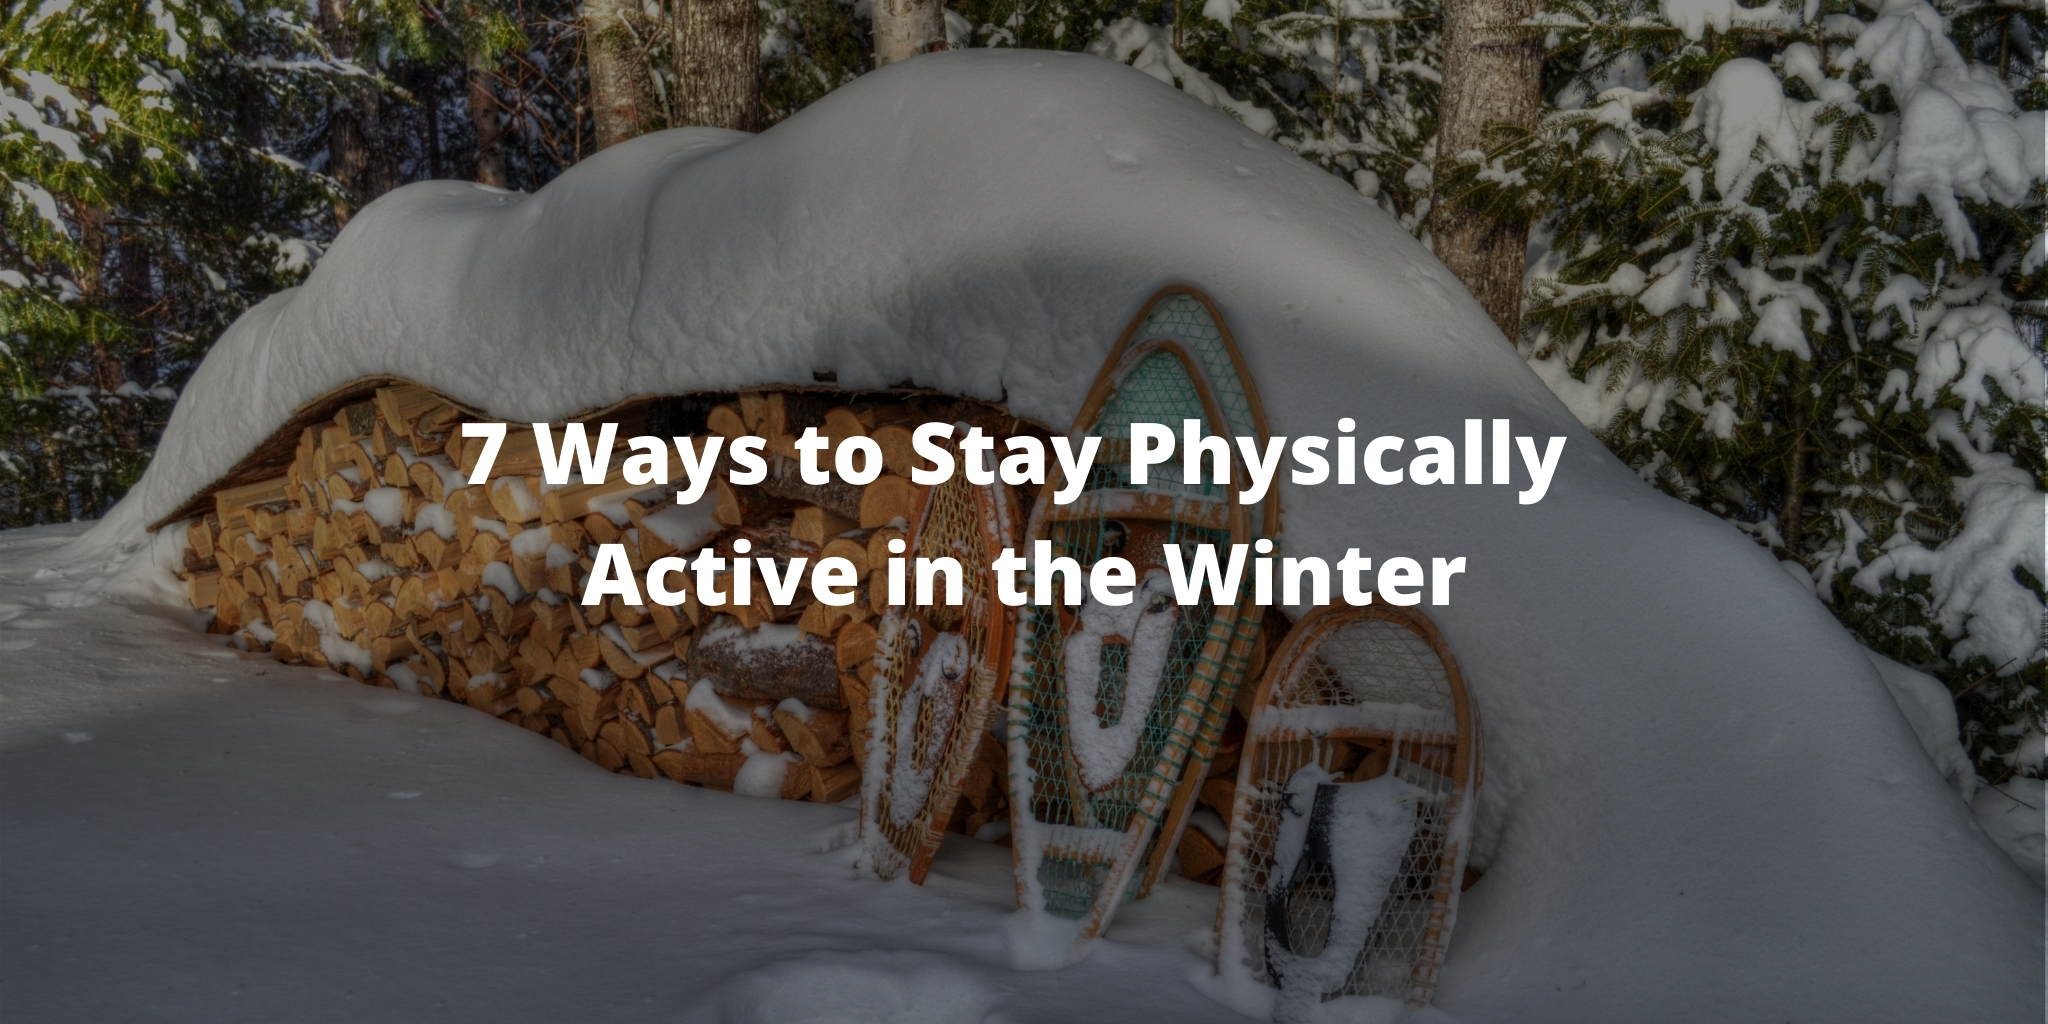 7 Ways to Stay Physically Active in the Winter